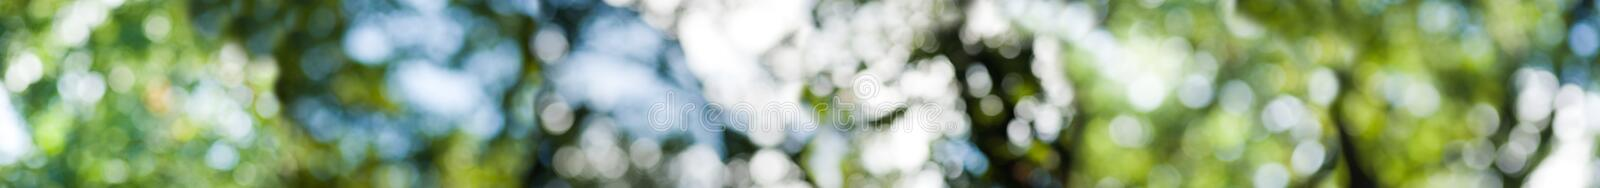 Abstract background image of green vegetable stock images